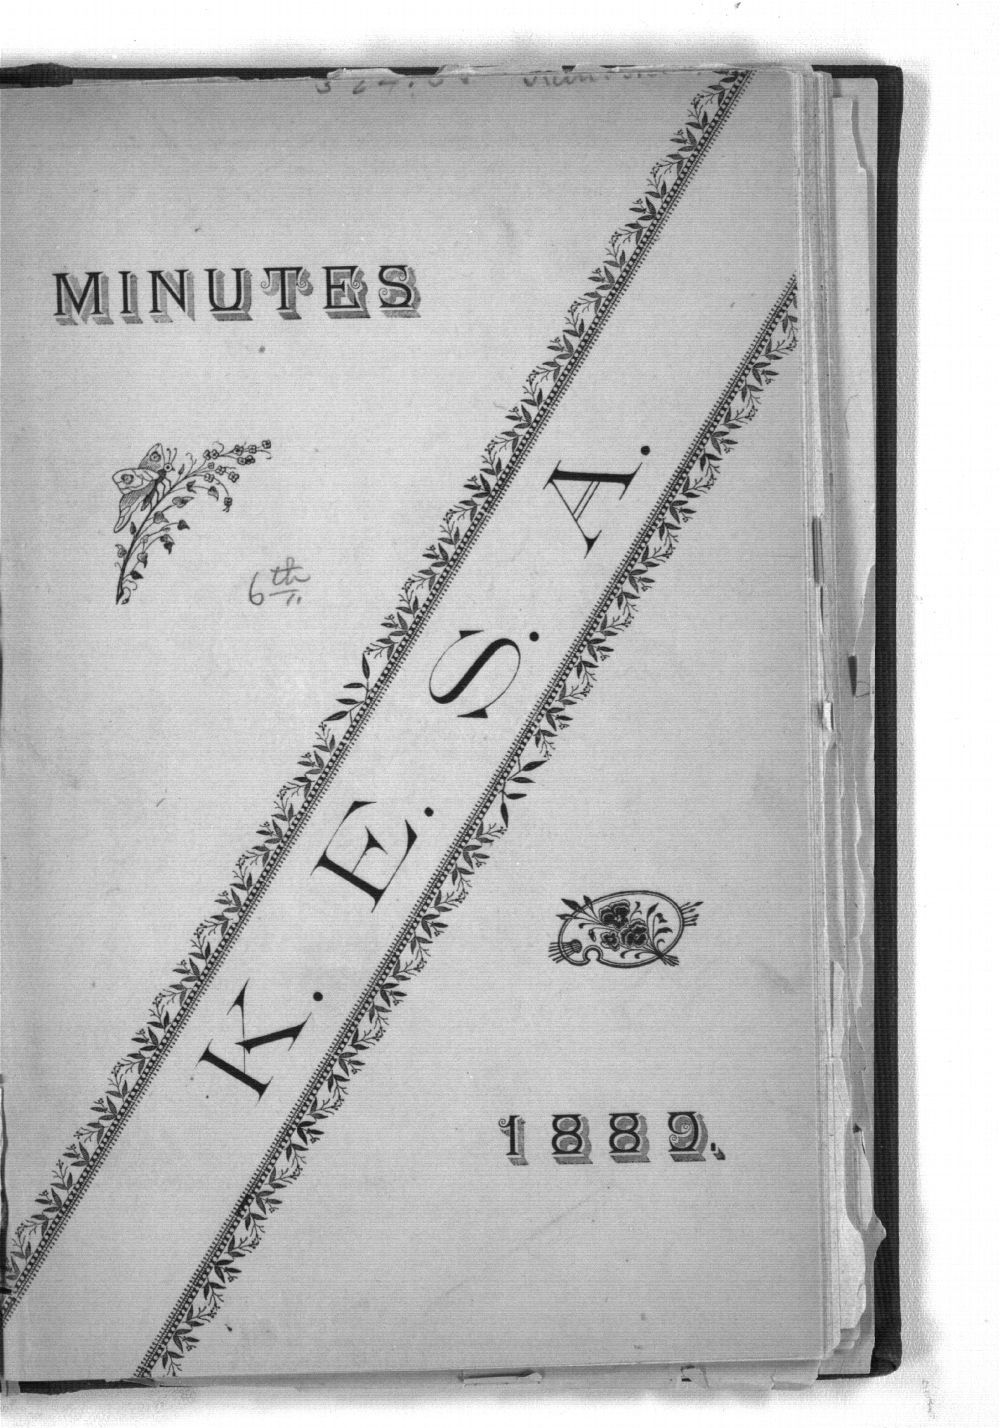 Minutes of the Kansas Equal Suffrage Association at the sixth annual meeting in 1889 - Front Cover